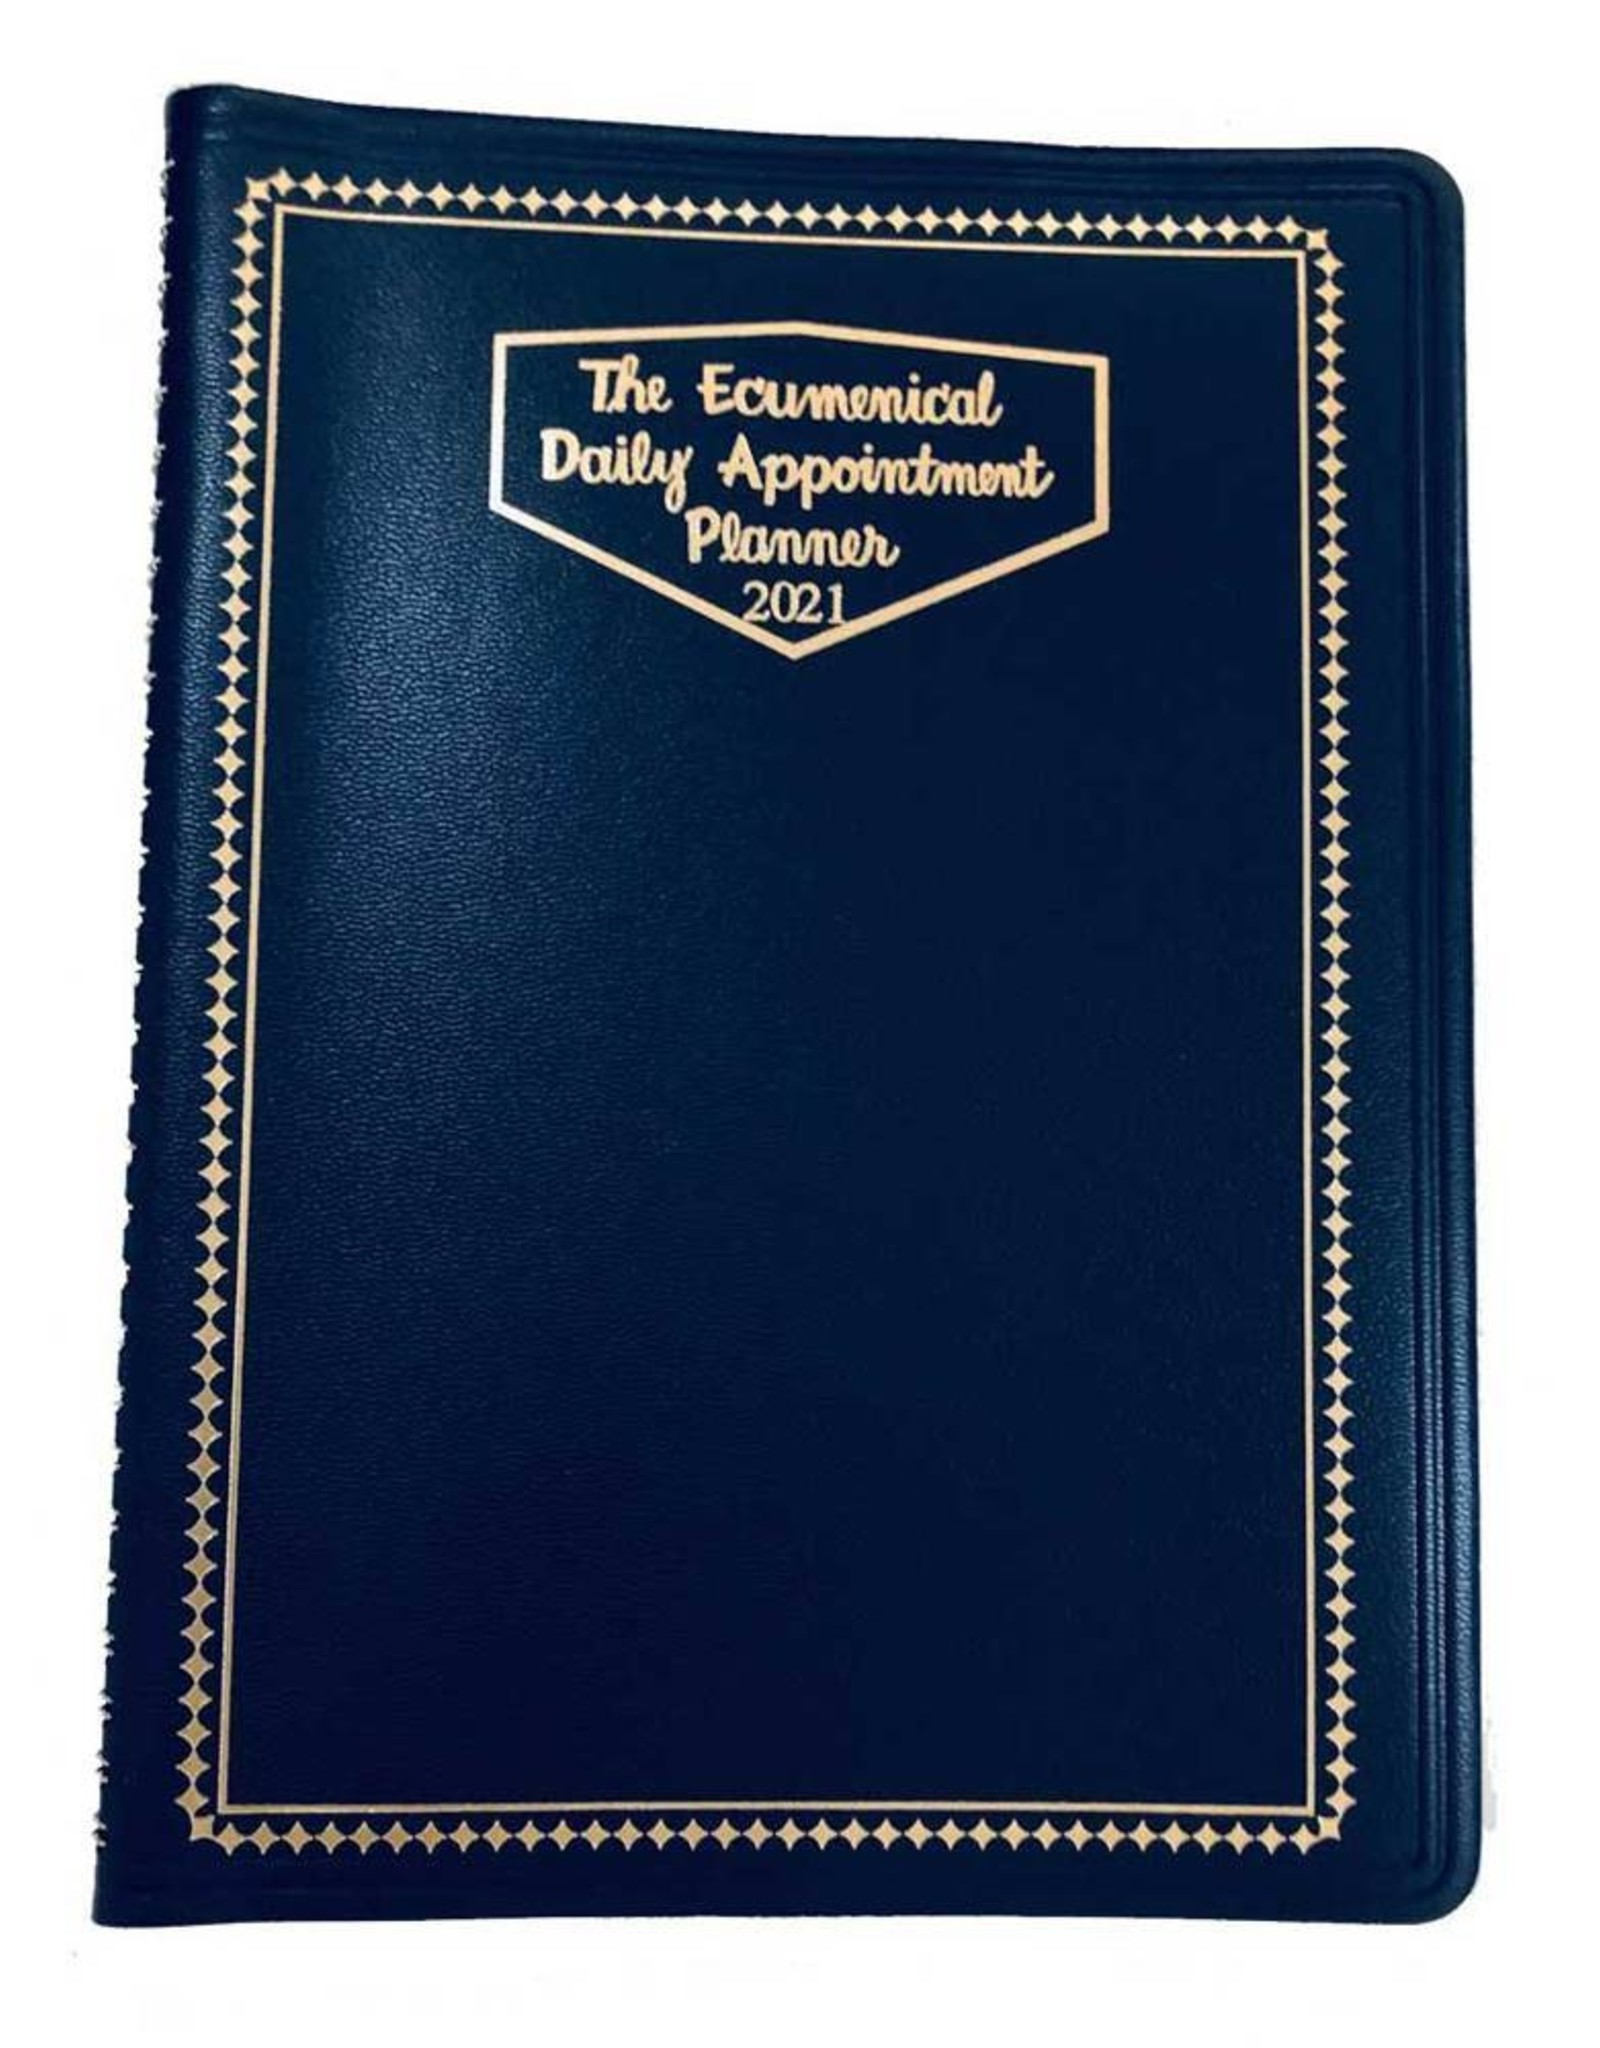 2021 Ecumenical Daily Appointment Planner